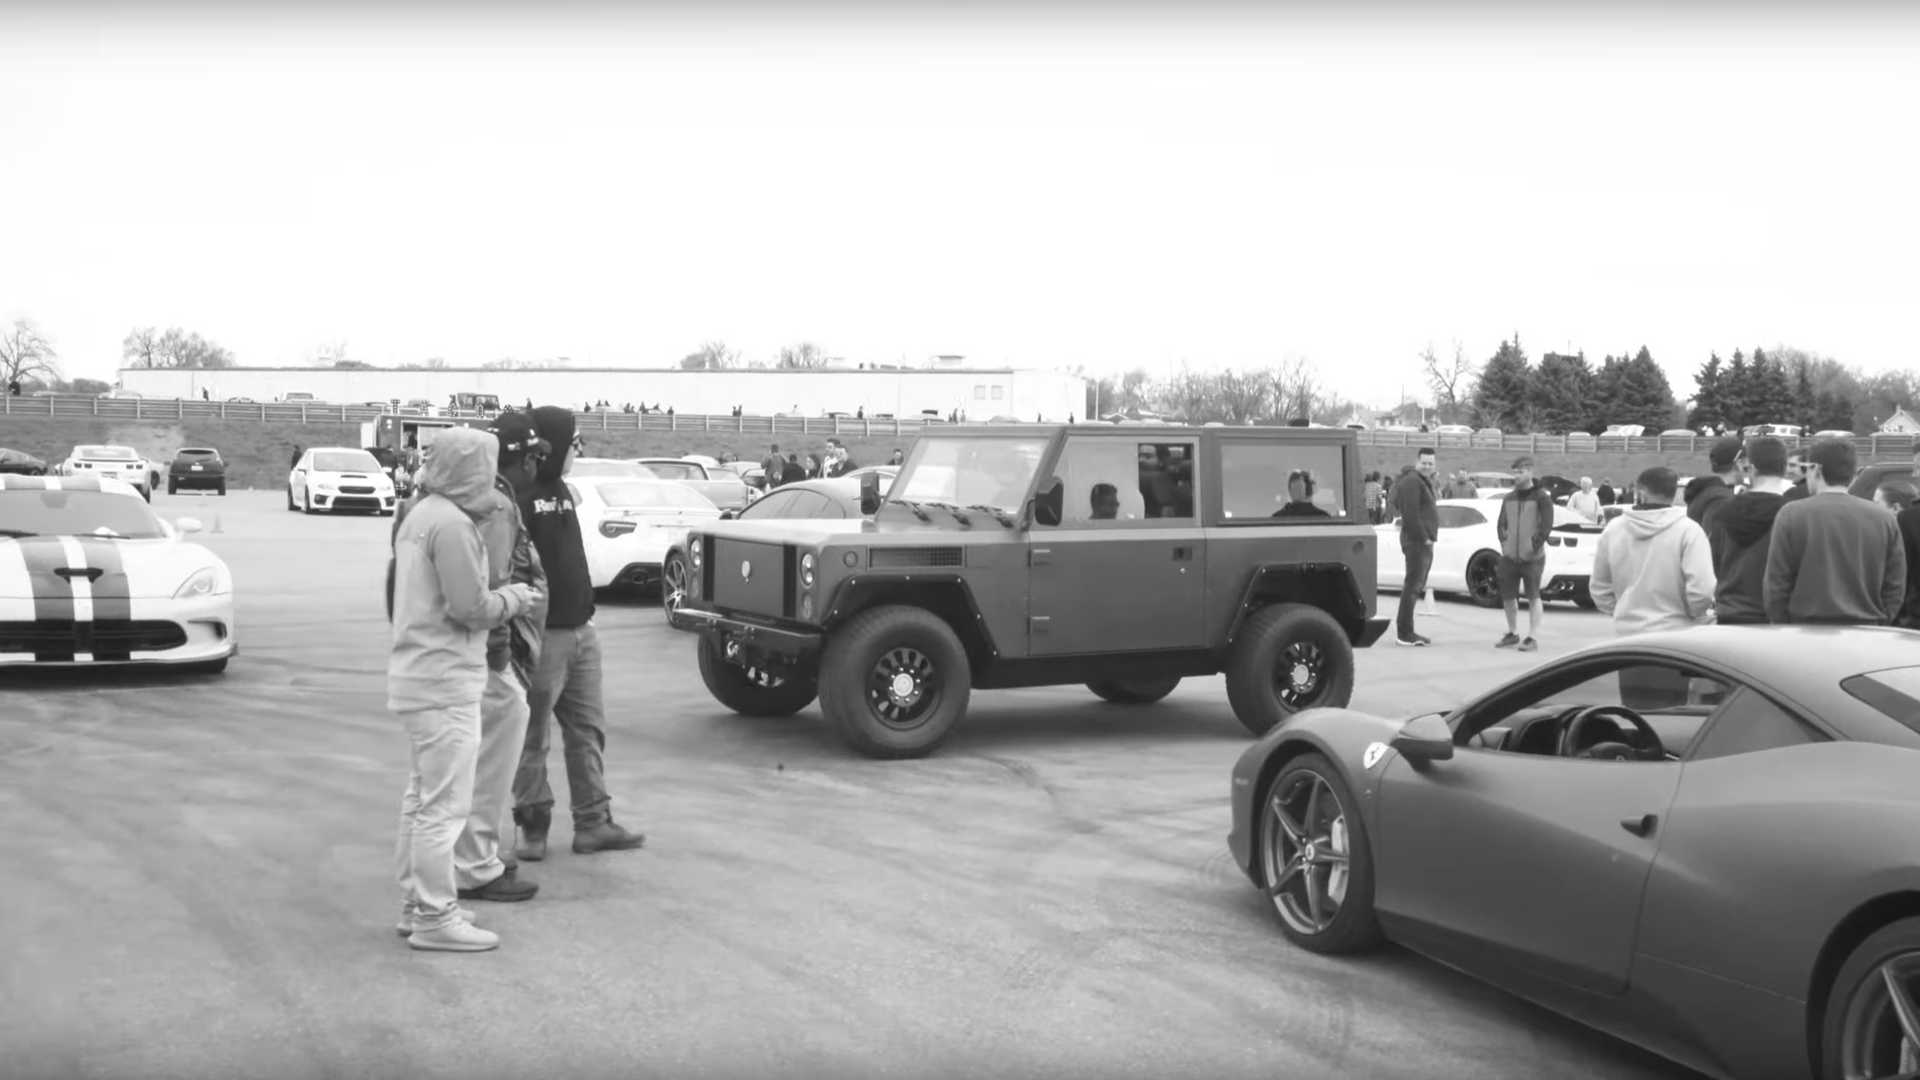 Bollinger B1 Electric Truck Shown Off At Cars & Coffee: Video